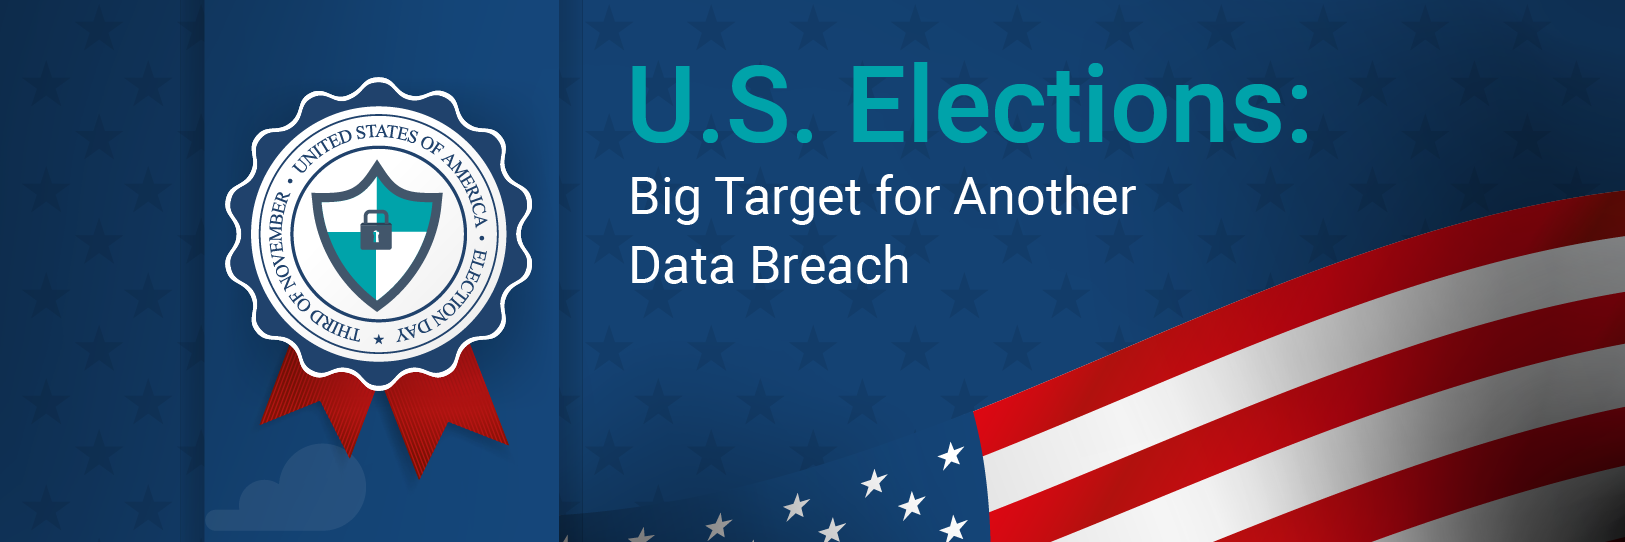 U.S. Elections: Big Target for Another Data Breach